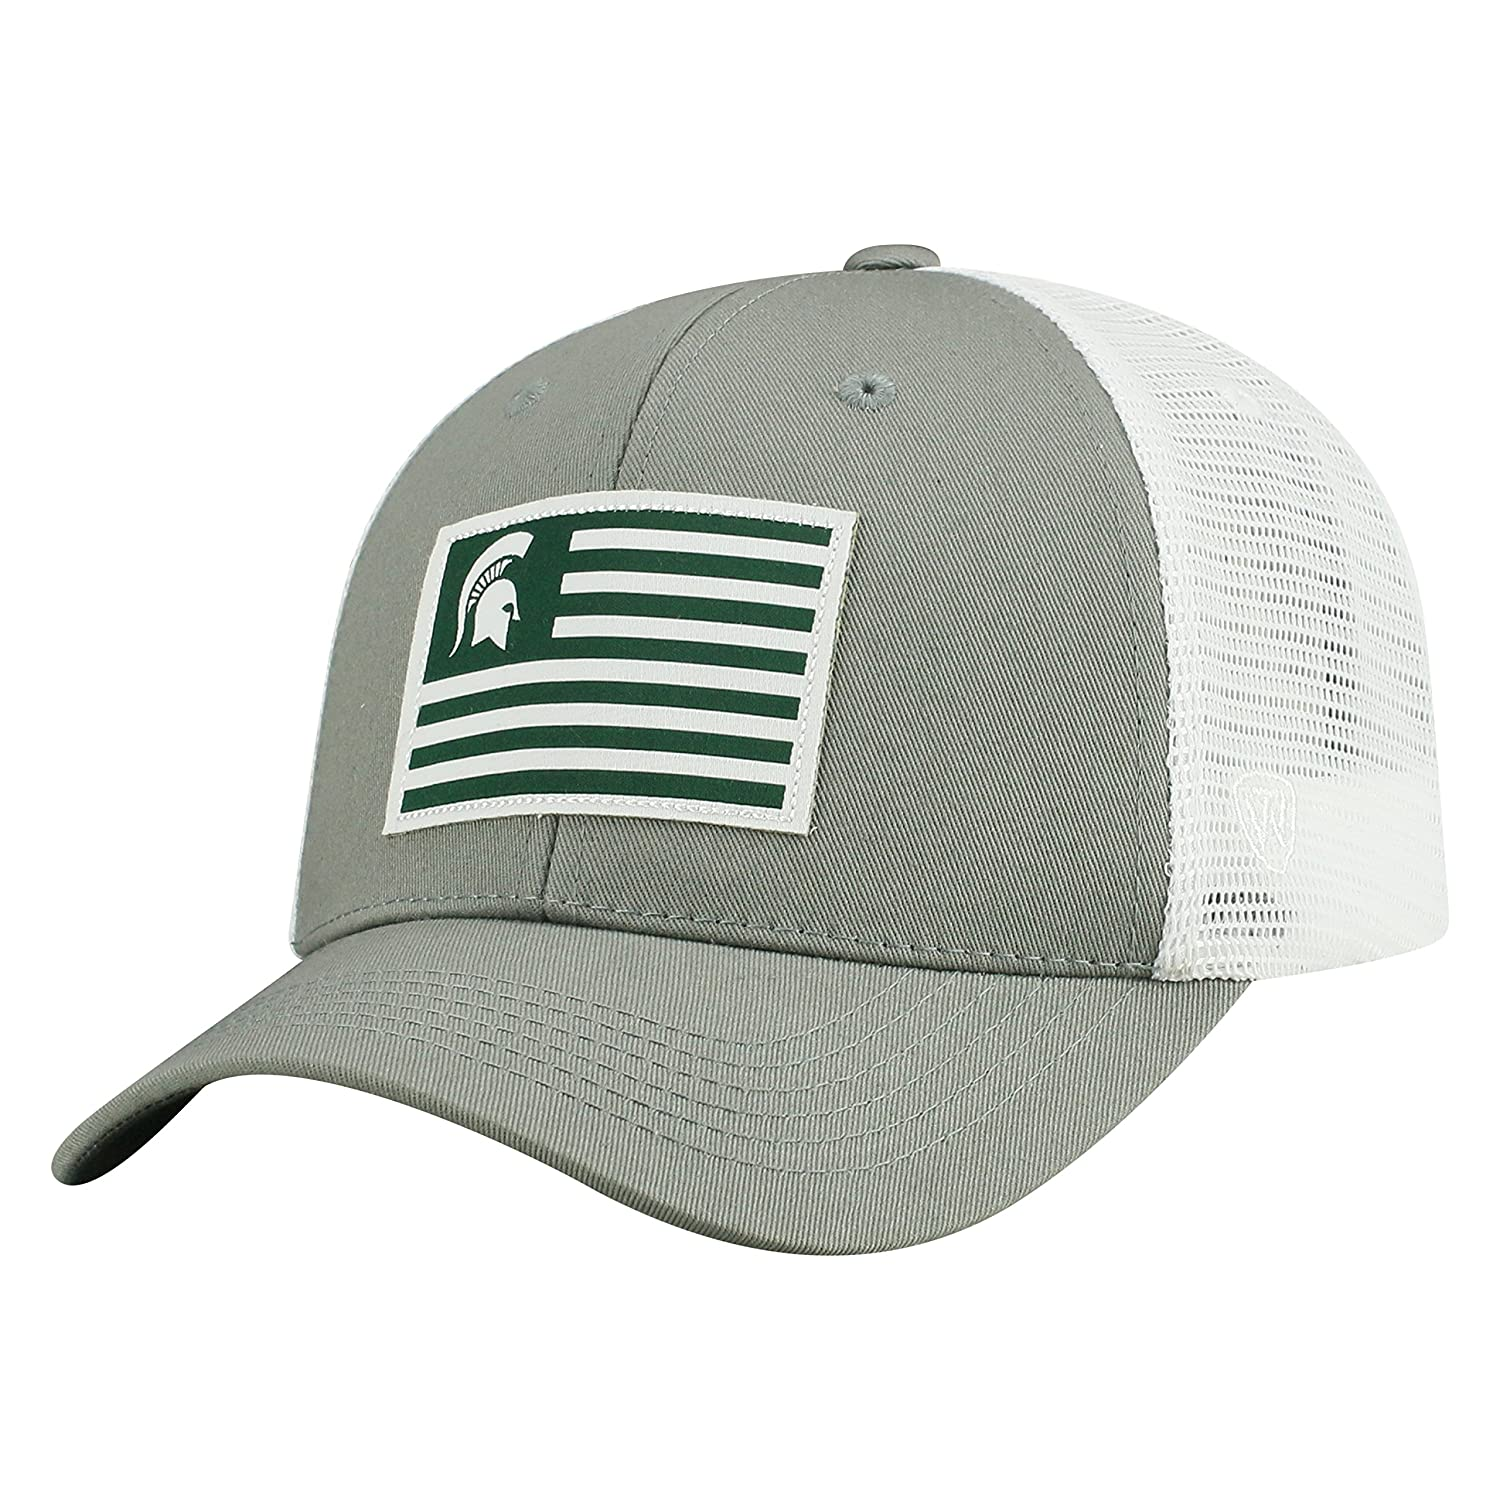 release date ba8b0 70322 Amazon.com   Top of the World Michigan State Spartans Official NCAA  Adjustable Brave Cotton Mesh Trucker Hat Cap 416335   Sports   Outdoors